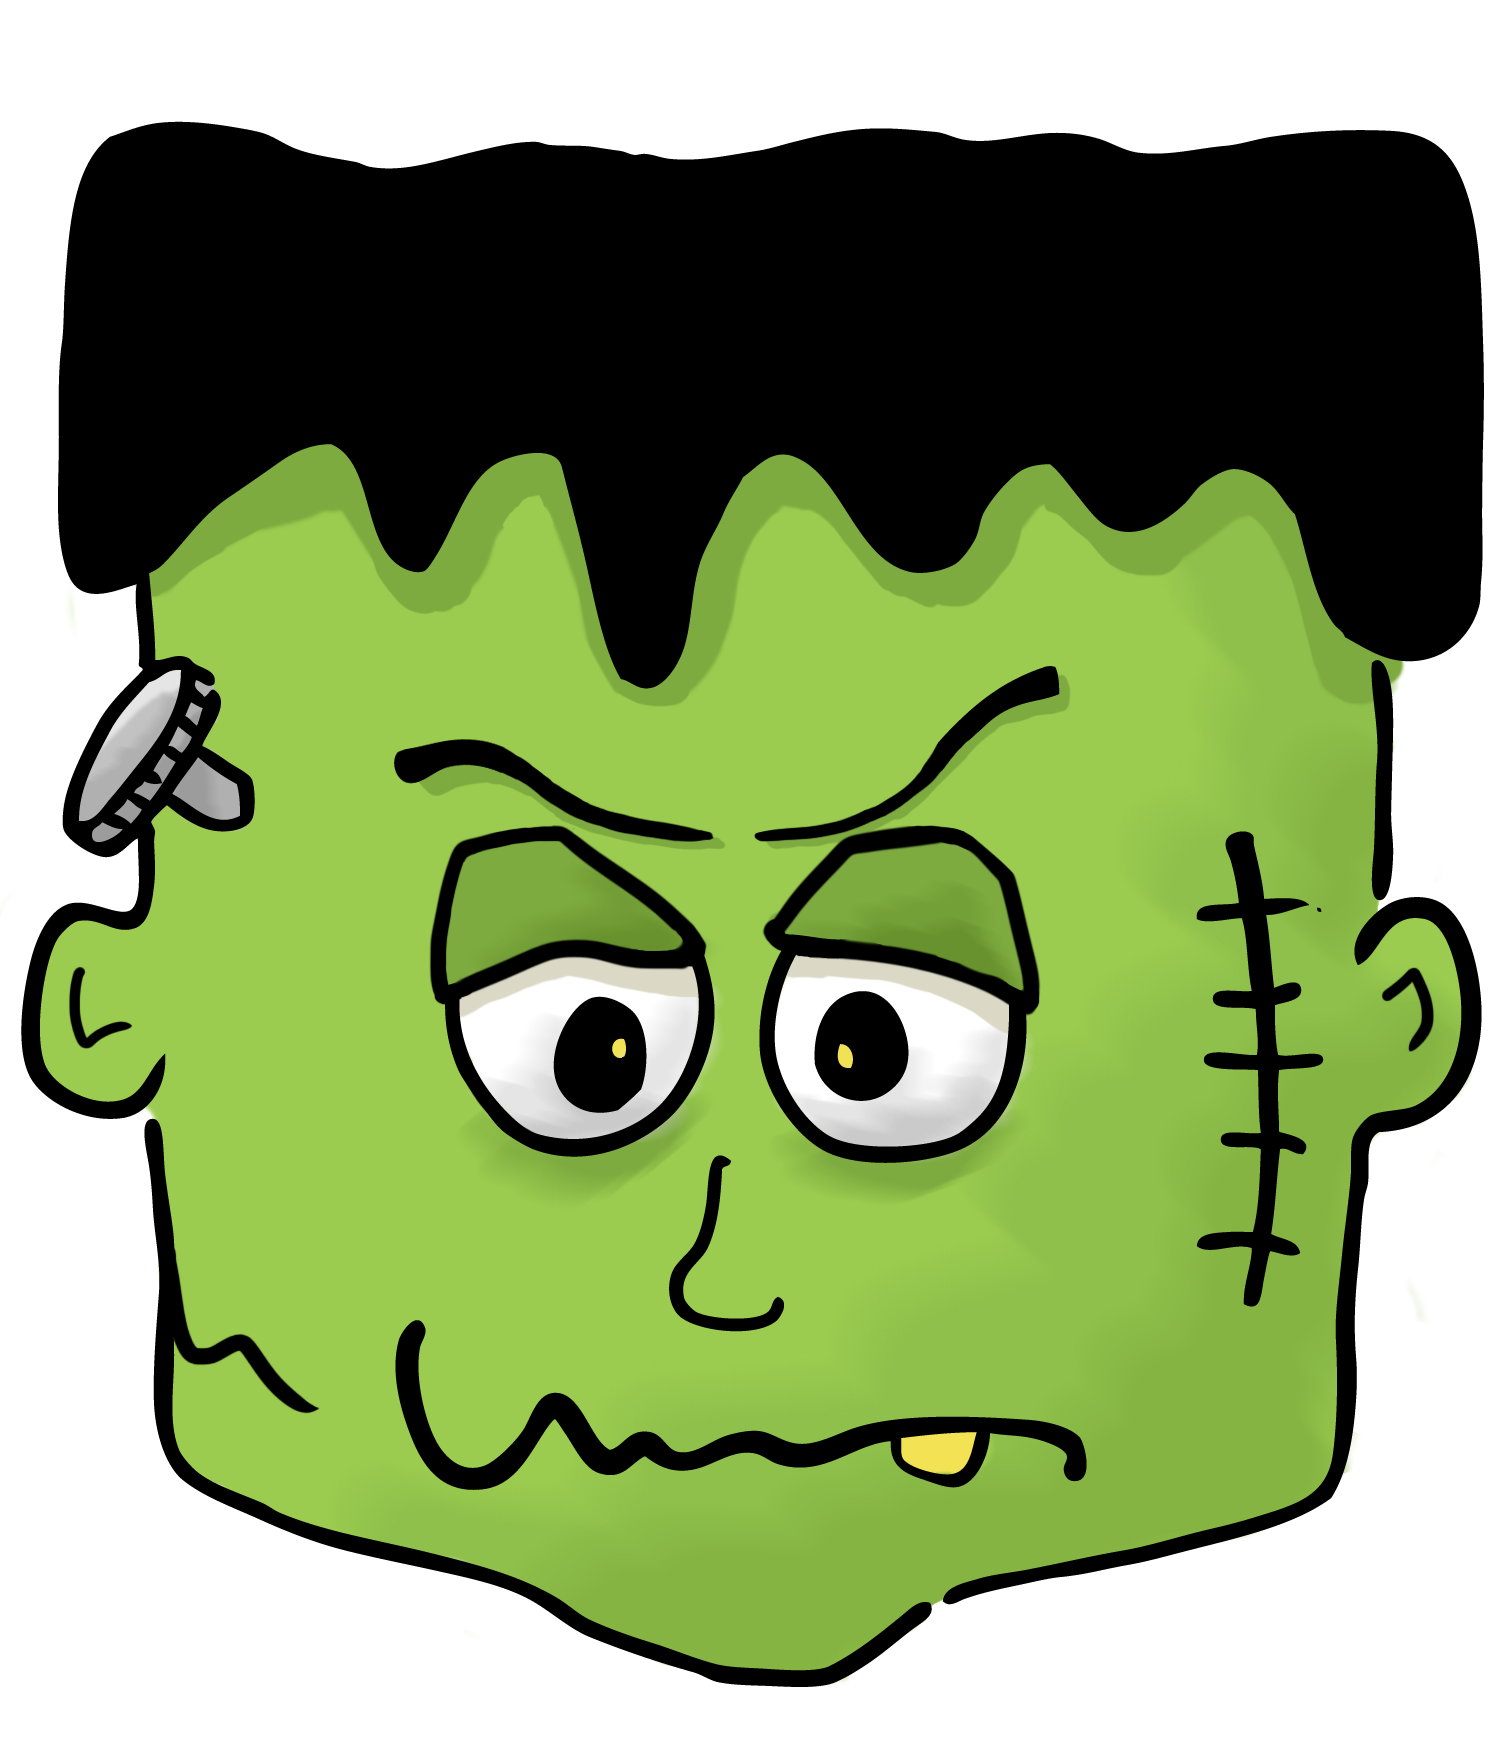 Boo clipart for halloween clipart Halloween Frankenstein Clipart Kid clipart